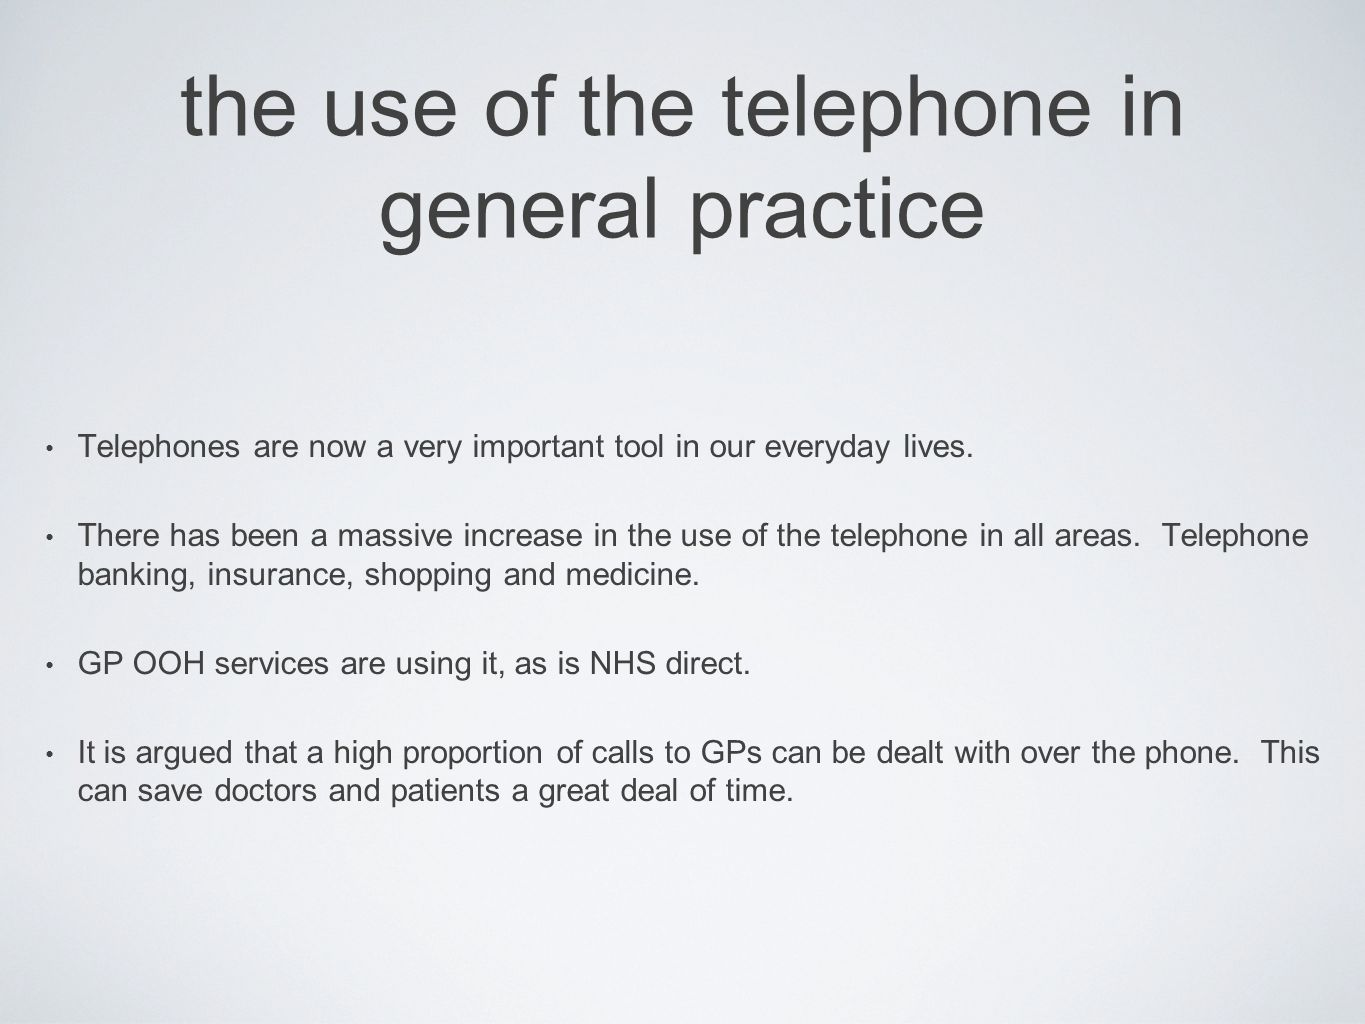 the use of the telephone in general practice Telephones are now a very important tool in our everyday lives. There has been a massive increase in the